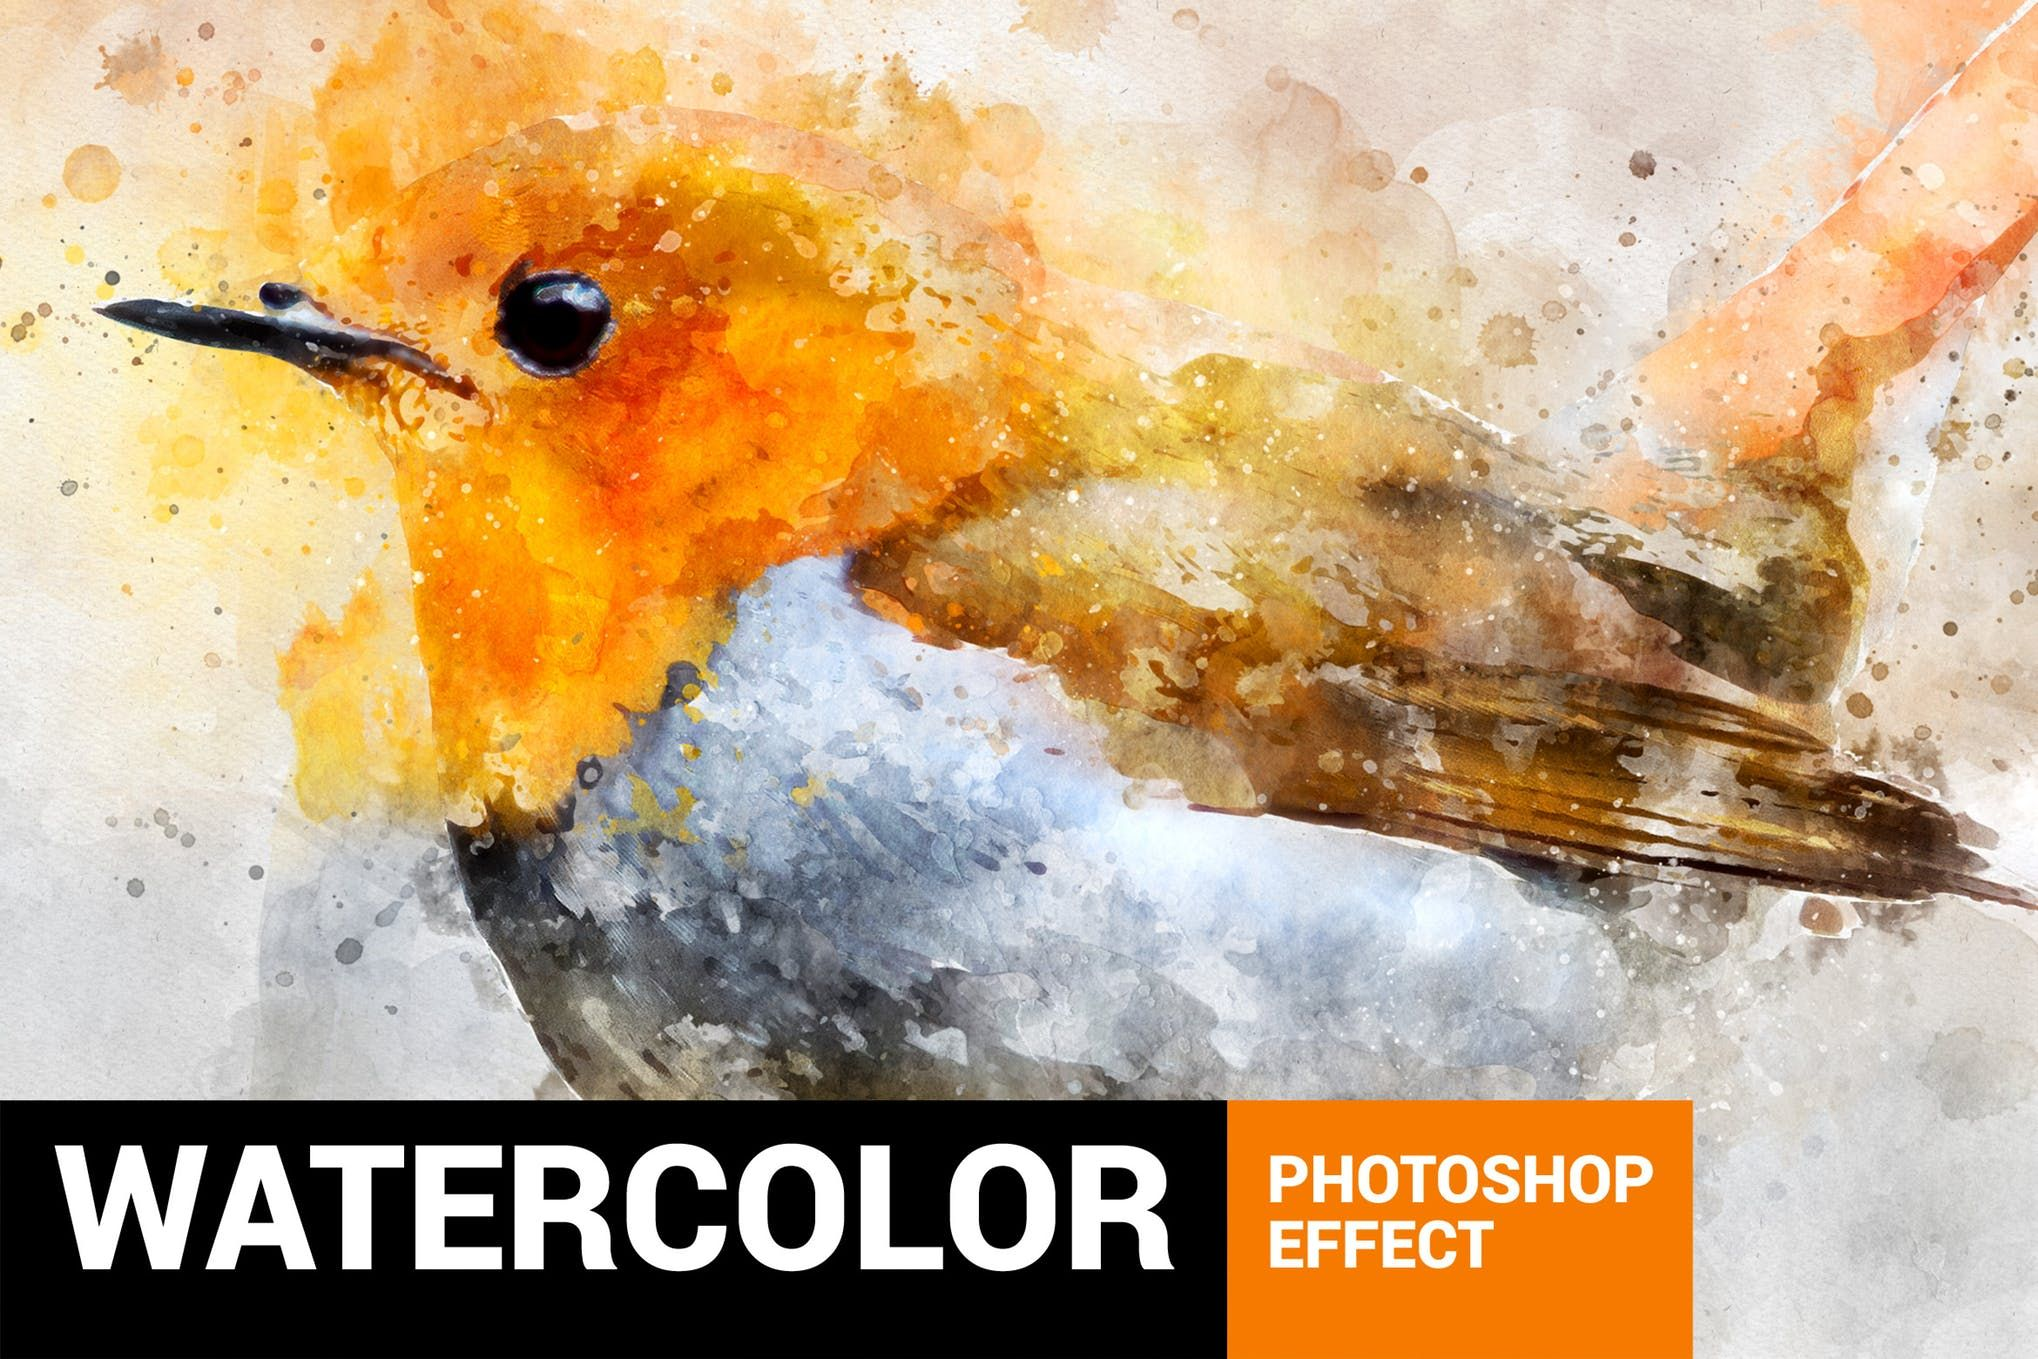 Perfectum 2 Watercolor Artist Photoshop Action By Profactions On